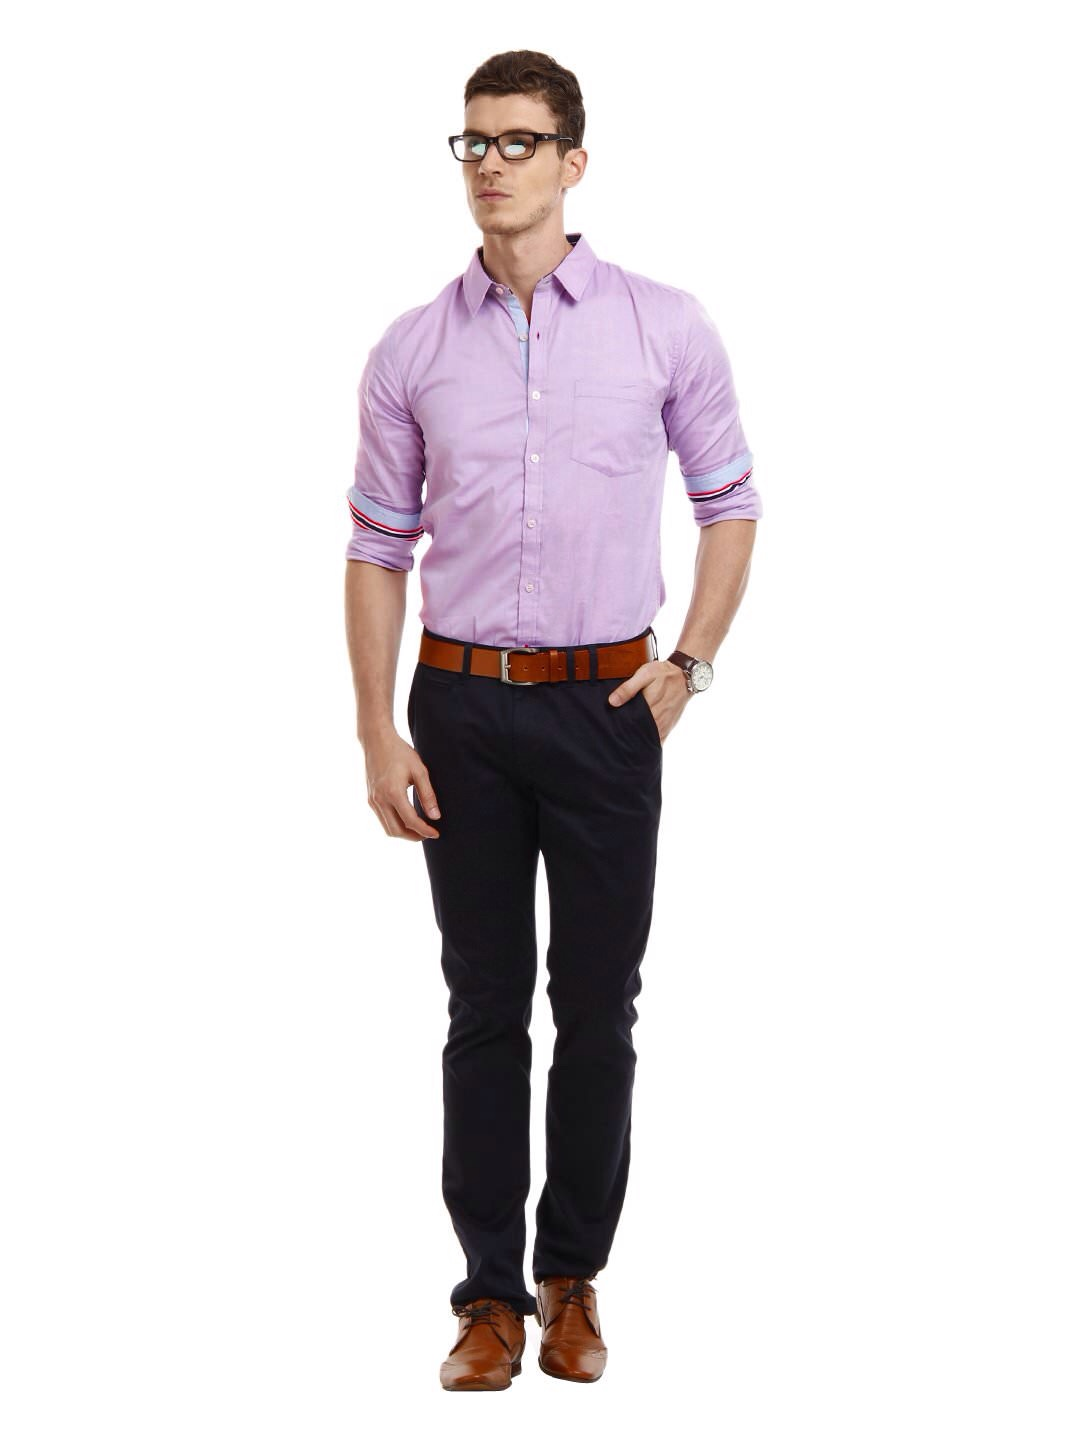 Men Fashion Casual, Men Casual, Guy Fashion, Mens Fashion Magazine, Classy Men, Gentleman Style, Mens Suits, Men Wear, Men Clothes Find this Pin and more on Men's Smart Casual .